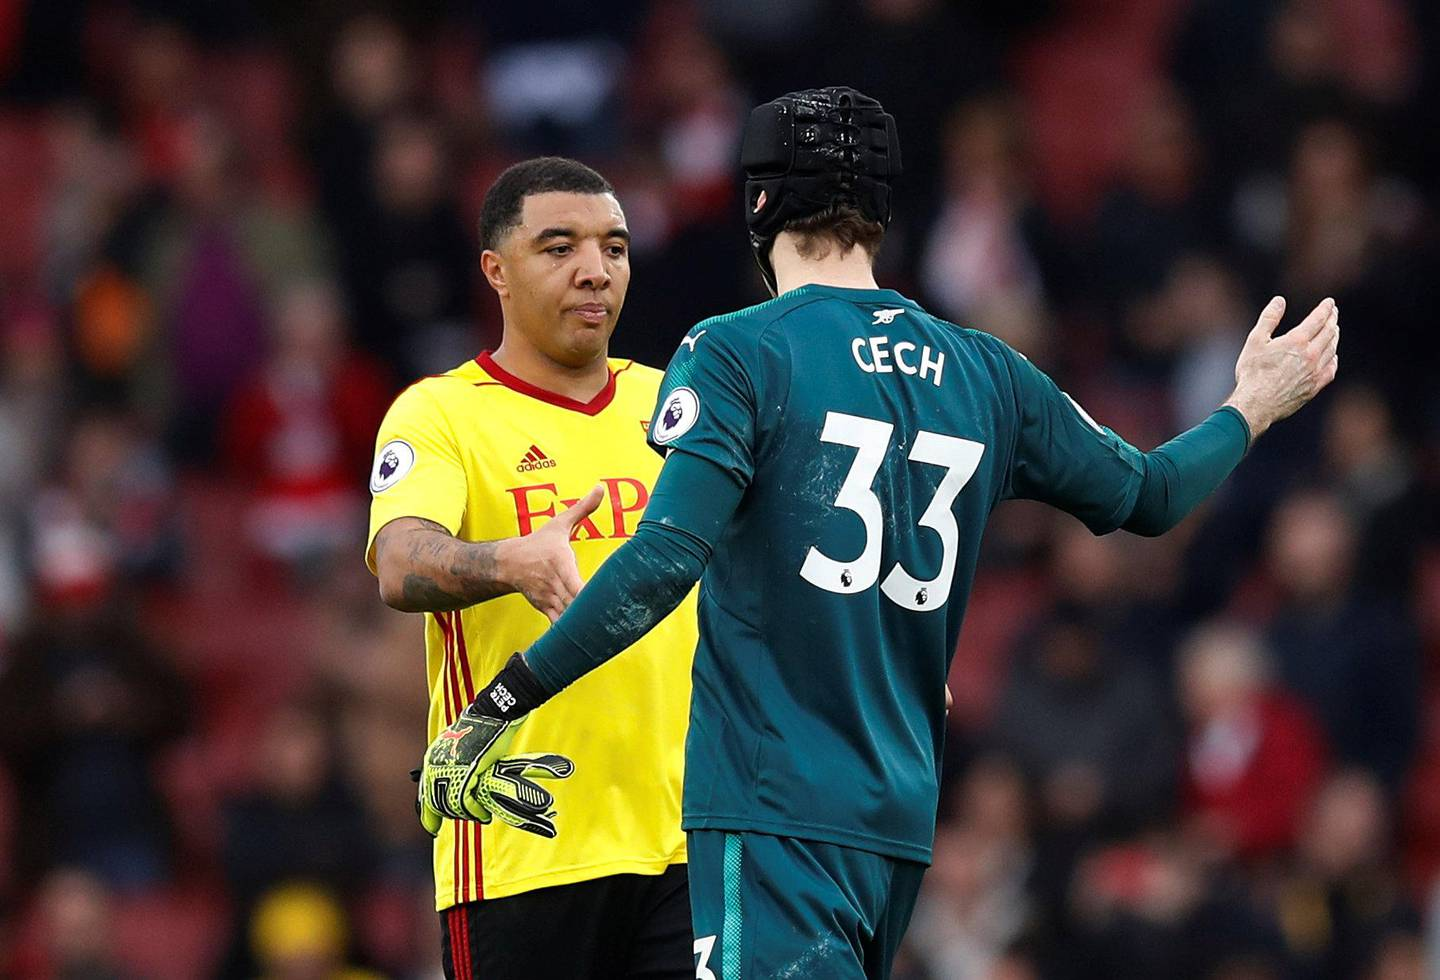 """Soccer Football - Premier League - Arsenal vs Watford - Emirates Stadium, London, Britain - March 11, 2018   Watford's Troy Deeney and Arsenal's Petr Cech at the end of the match   REUTERS/Eddie Keogh    EDITORIAL USE ONLY. No use with unauthorized audio, video, data, fixture lists, club/league logos or """"live"""" services. Online in-match use limited to 75 images, no video emulation. No use in betting, games or single club/league/player publications.  Please contact your account representative for further details."""